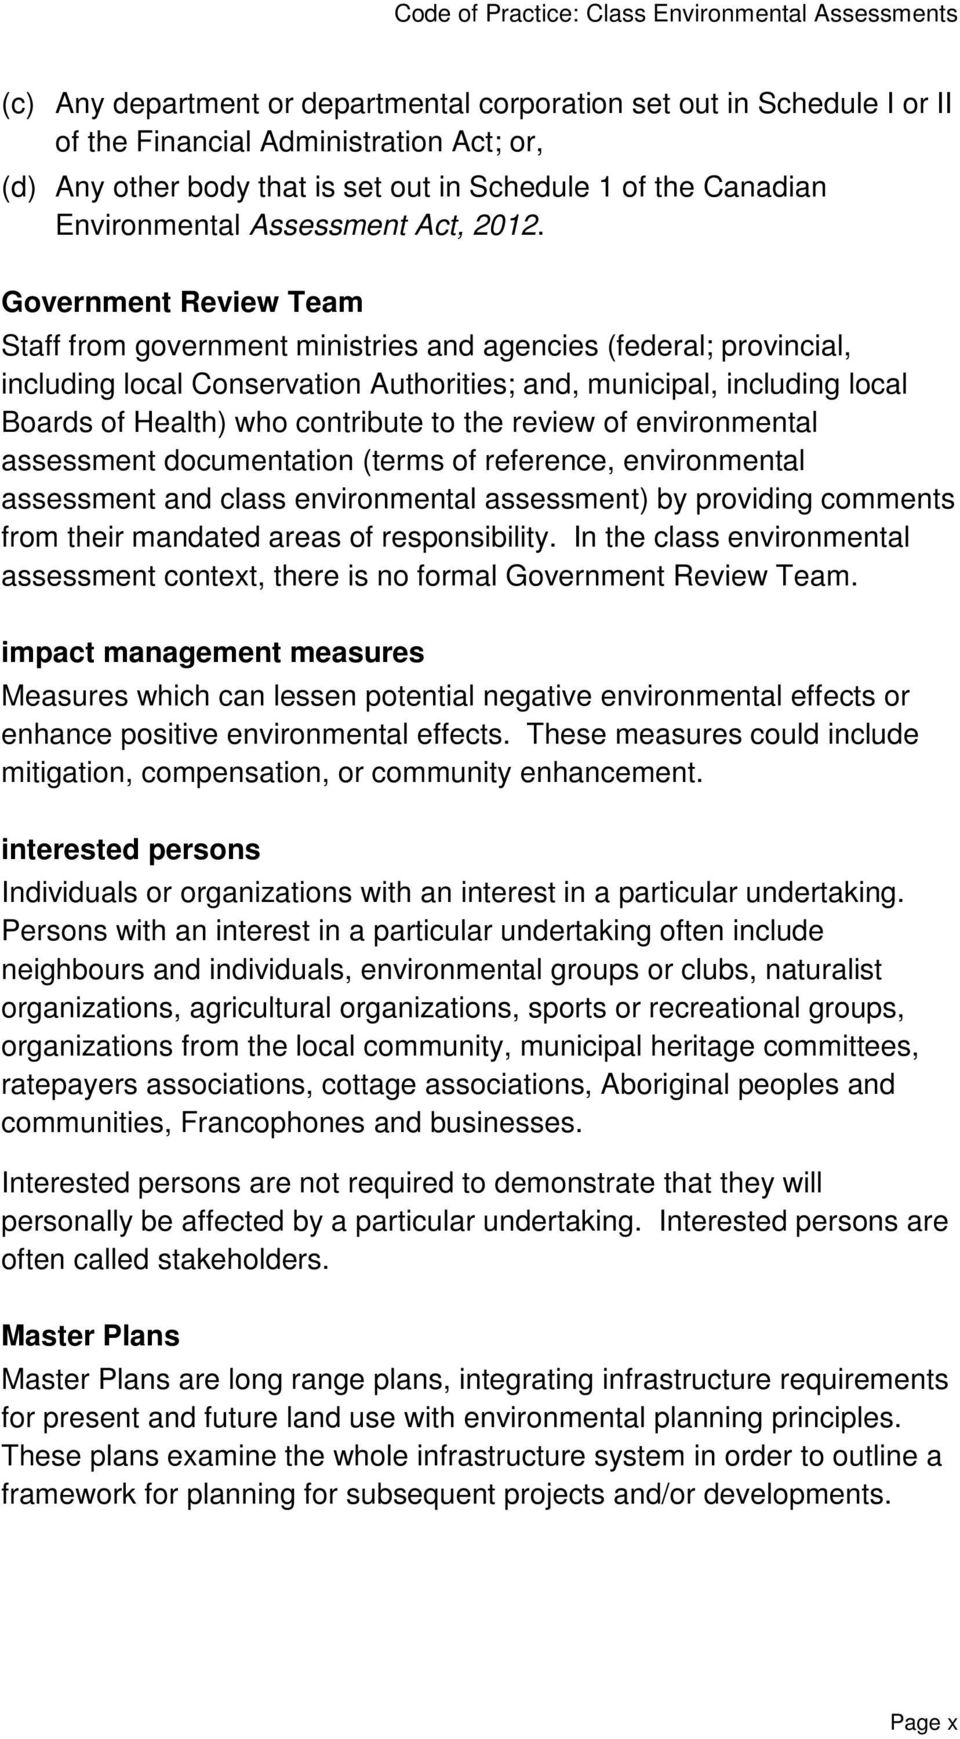 Government Review Team Staff from government ministries and agencies (federal; provincial, including local Conservation Authorities; and, municipal, including local Boards of Health) who contribute